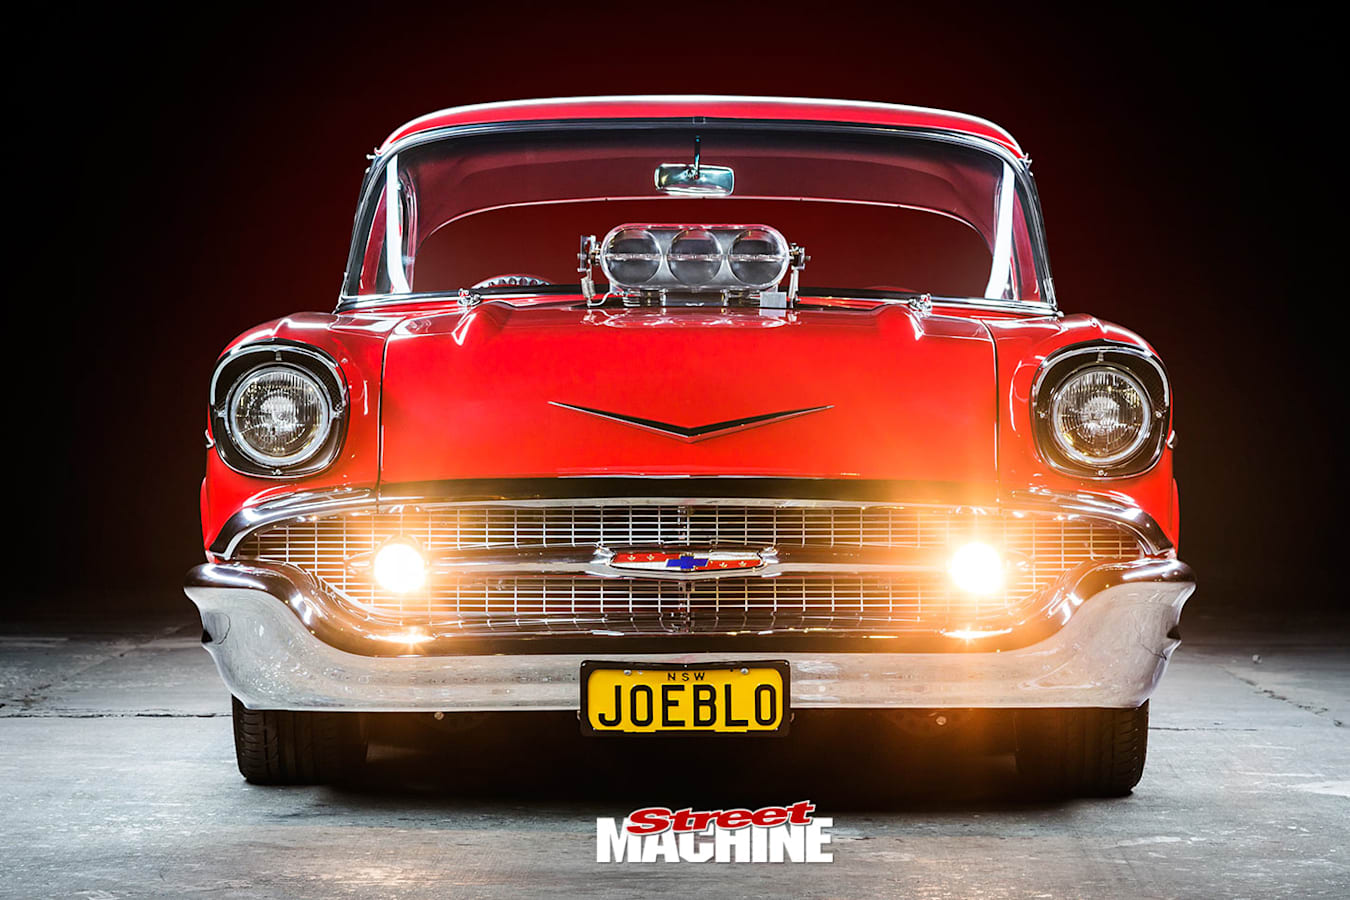 1957 Chev front